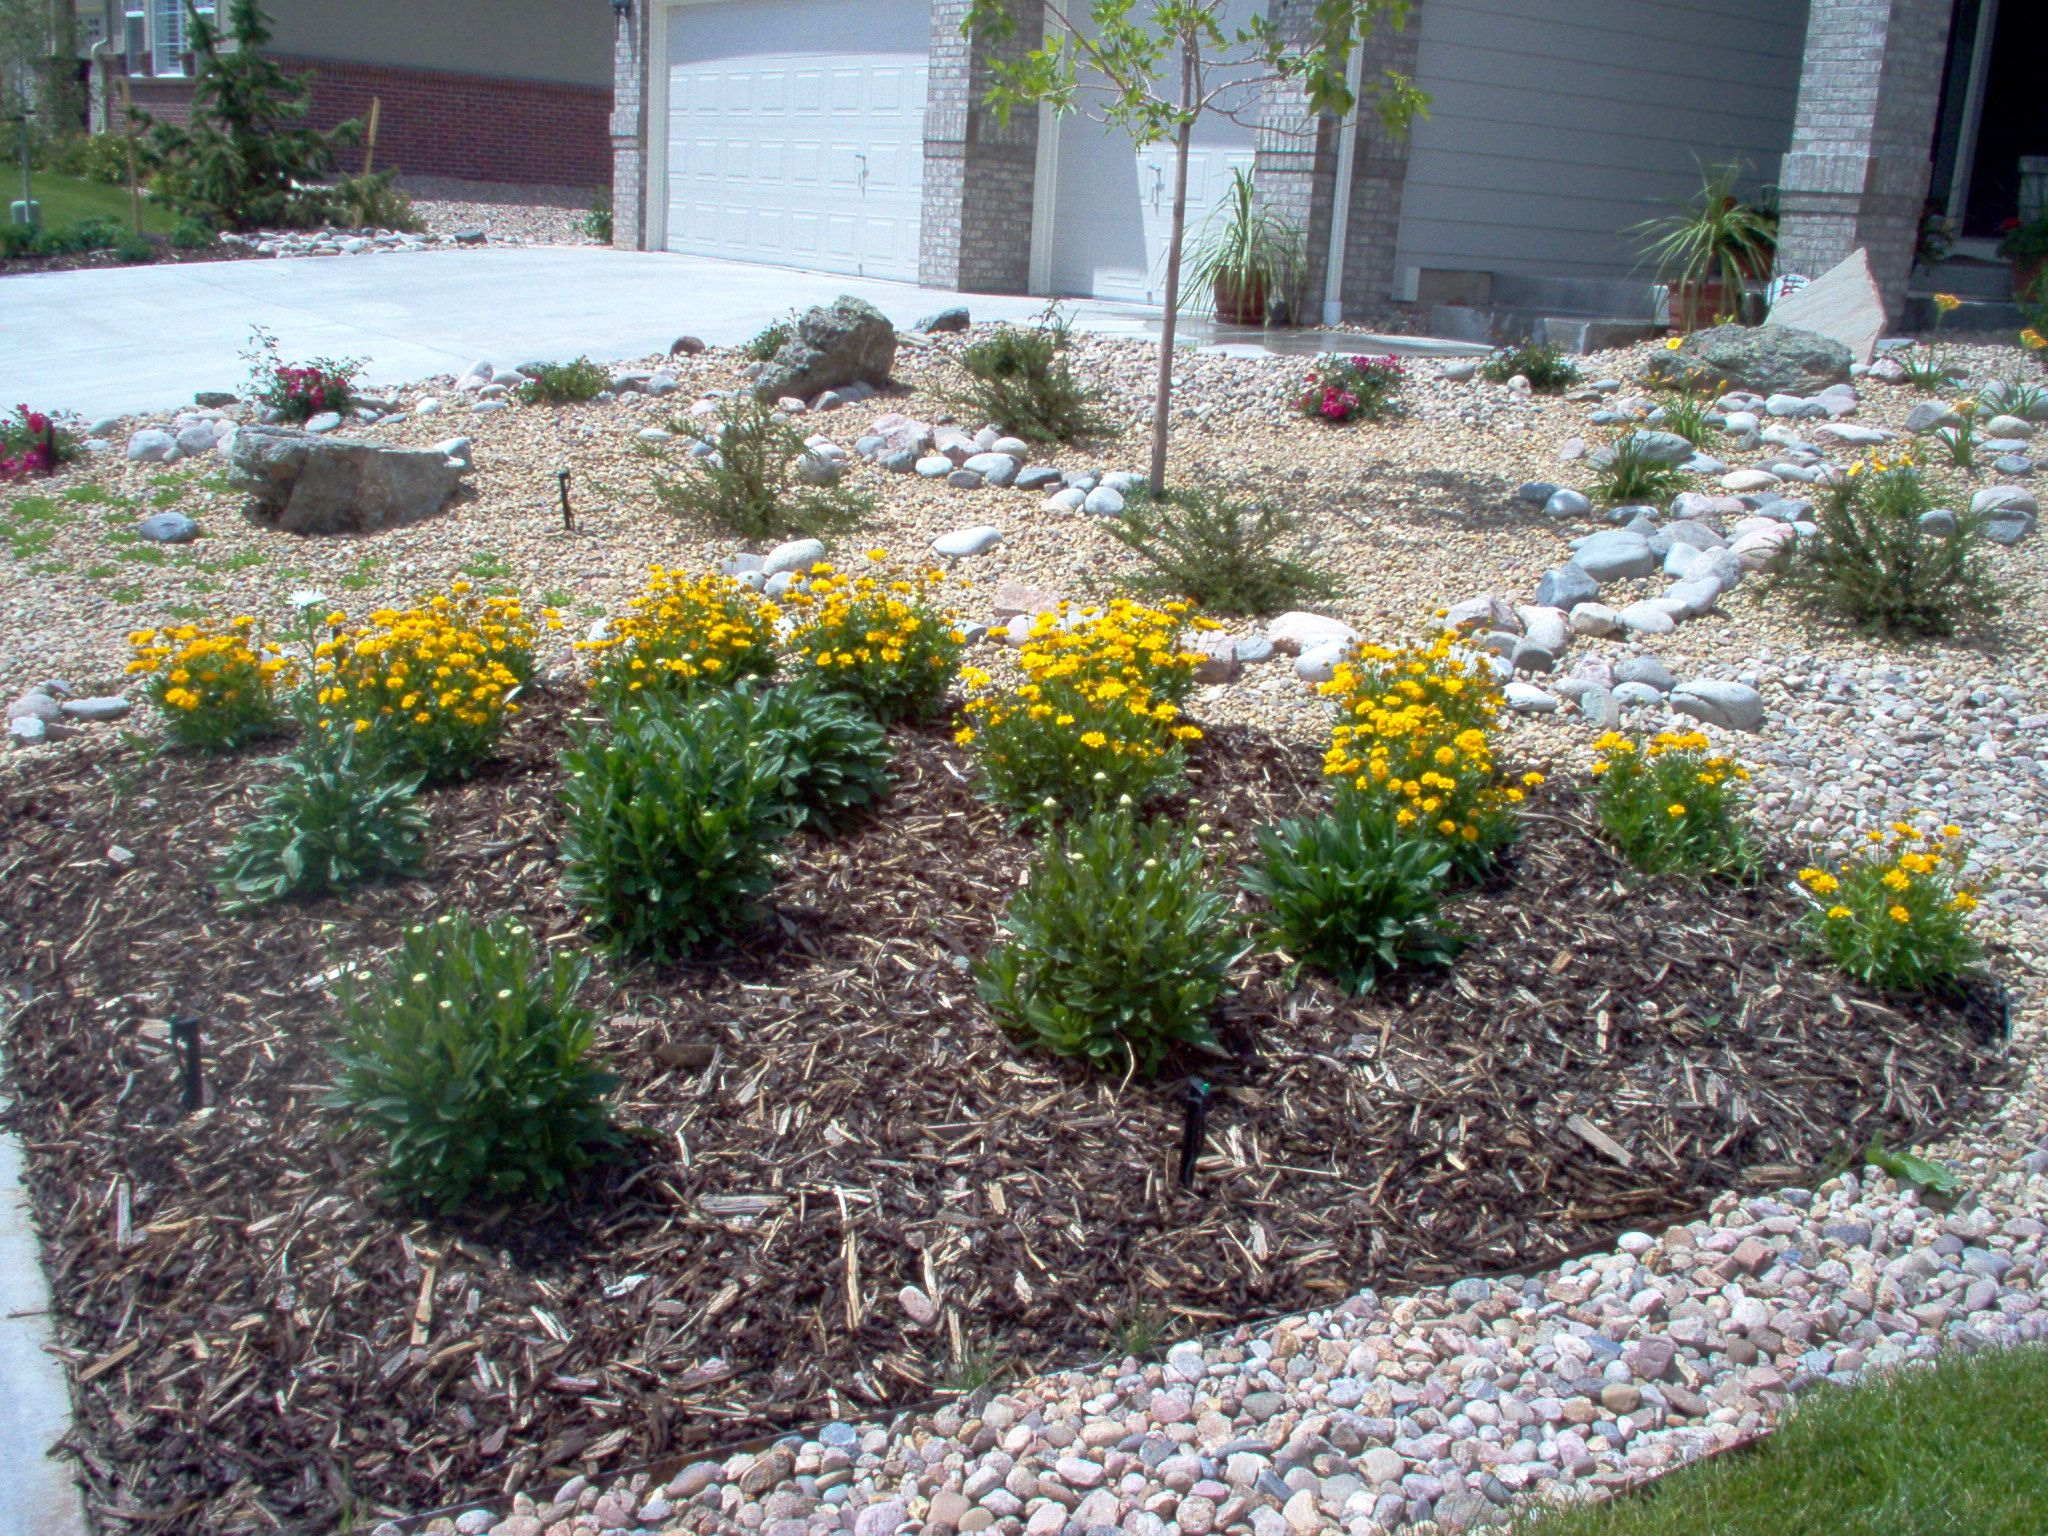 Xeriscape Ideas For Front Yard Part - 19: Landscaping-ideas-ravishing-xeriscape-ideas-front-lawn-xeriscape-